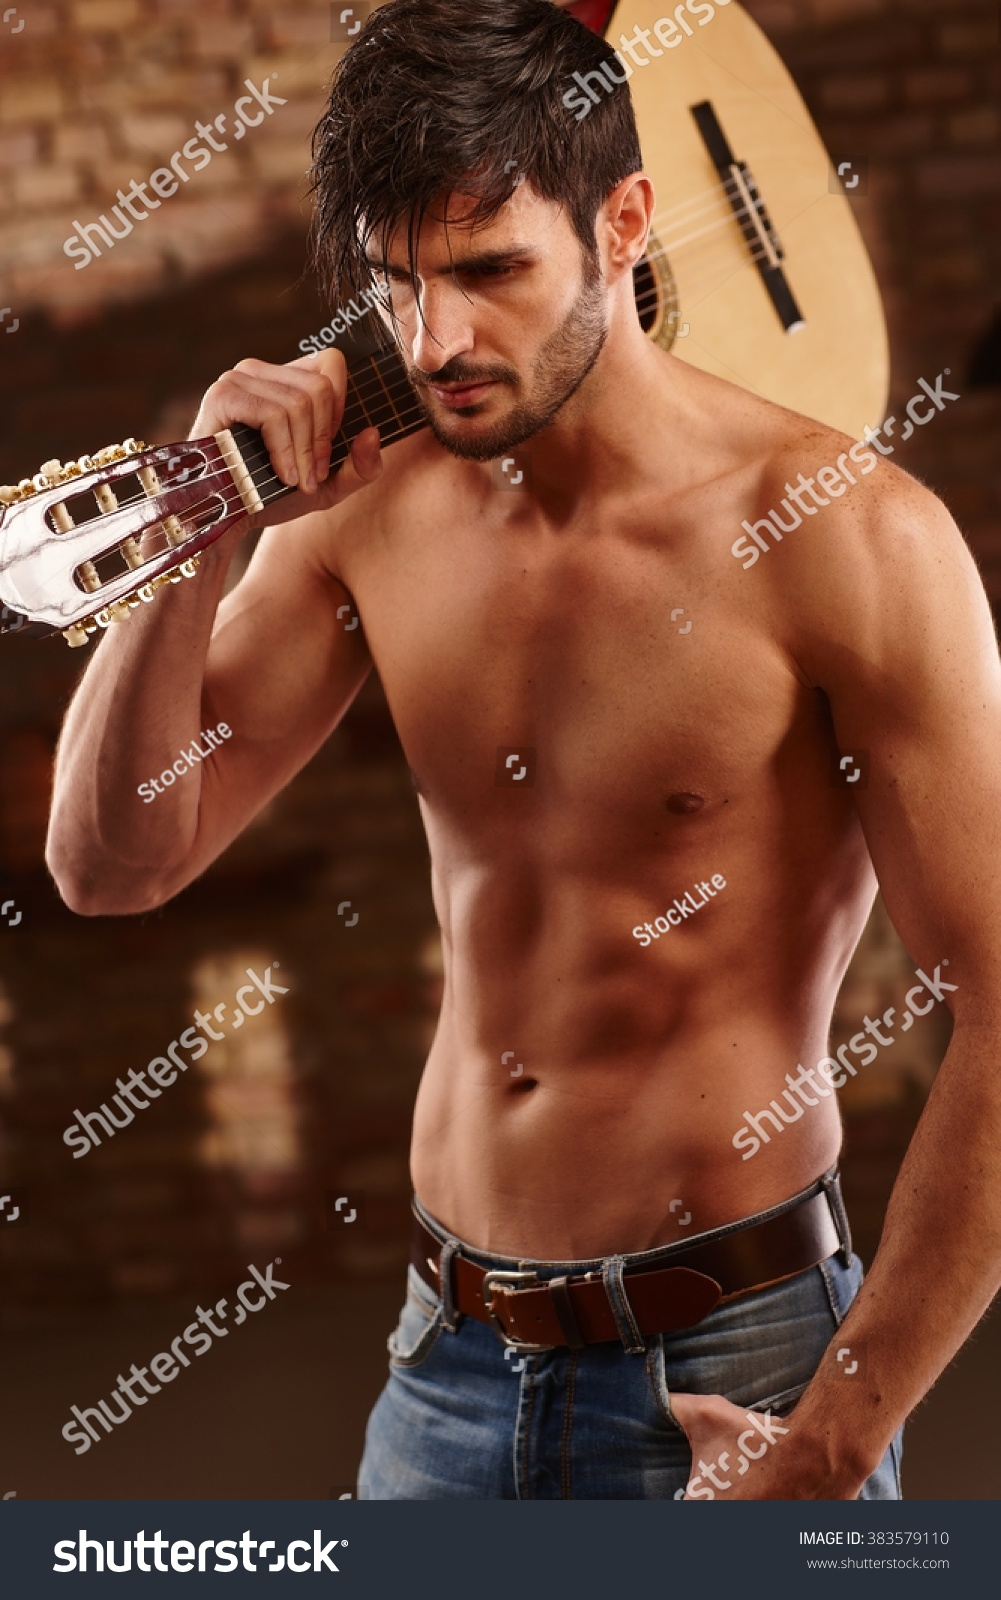 Sexy Latin Lover Holding Guitar With Bare Upper Body